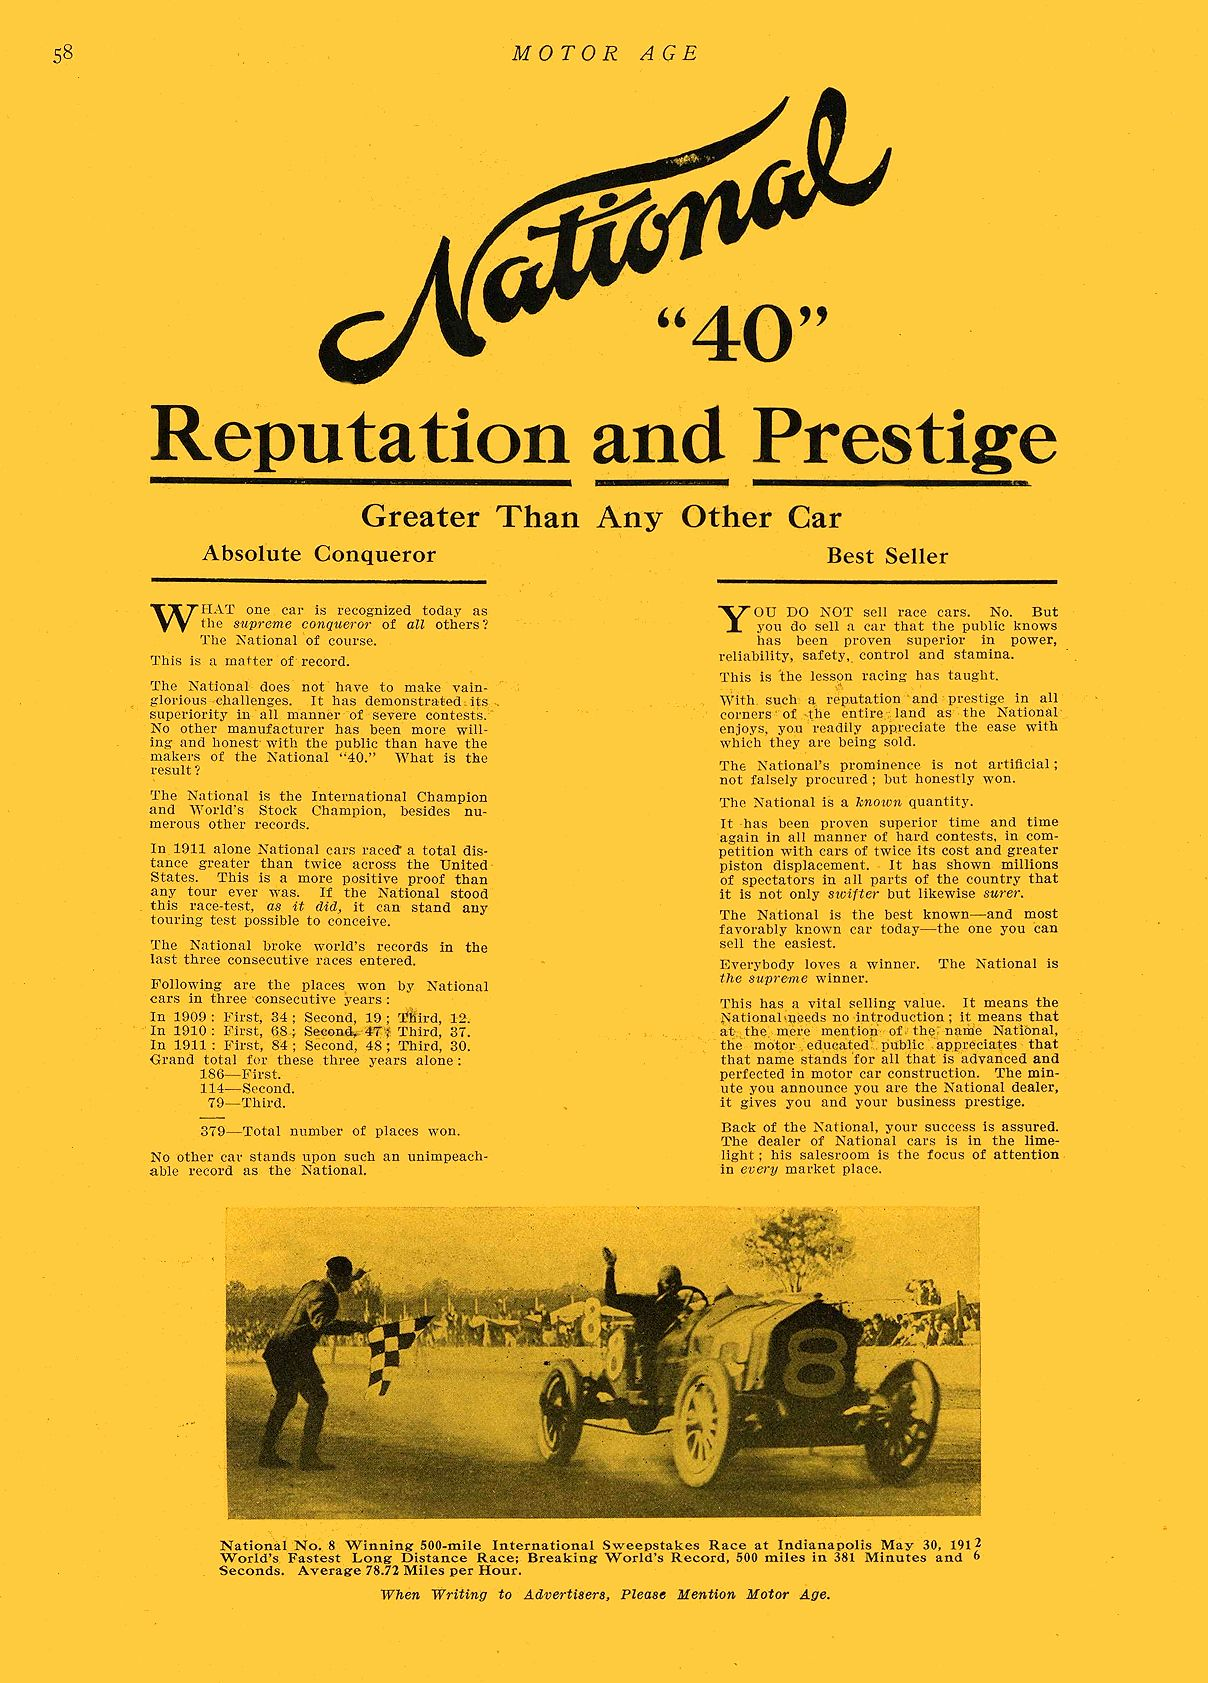 """1912 7 11 NATIONAL National """"40"""" Reputation and Prestige NATIONAL MOTOR VEHICLE CO. Indianapolis, IND MOTOR AGE July 11, 1912 9″x12″ page 58"""